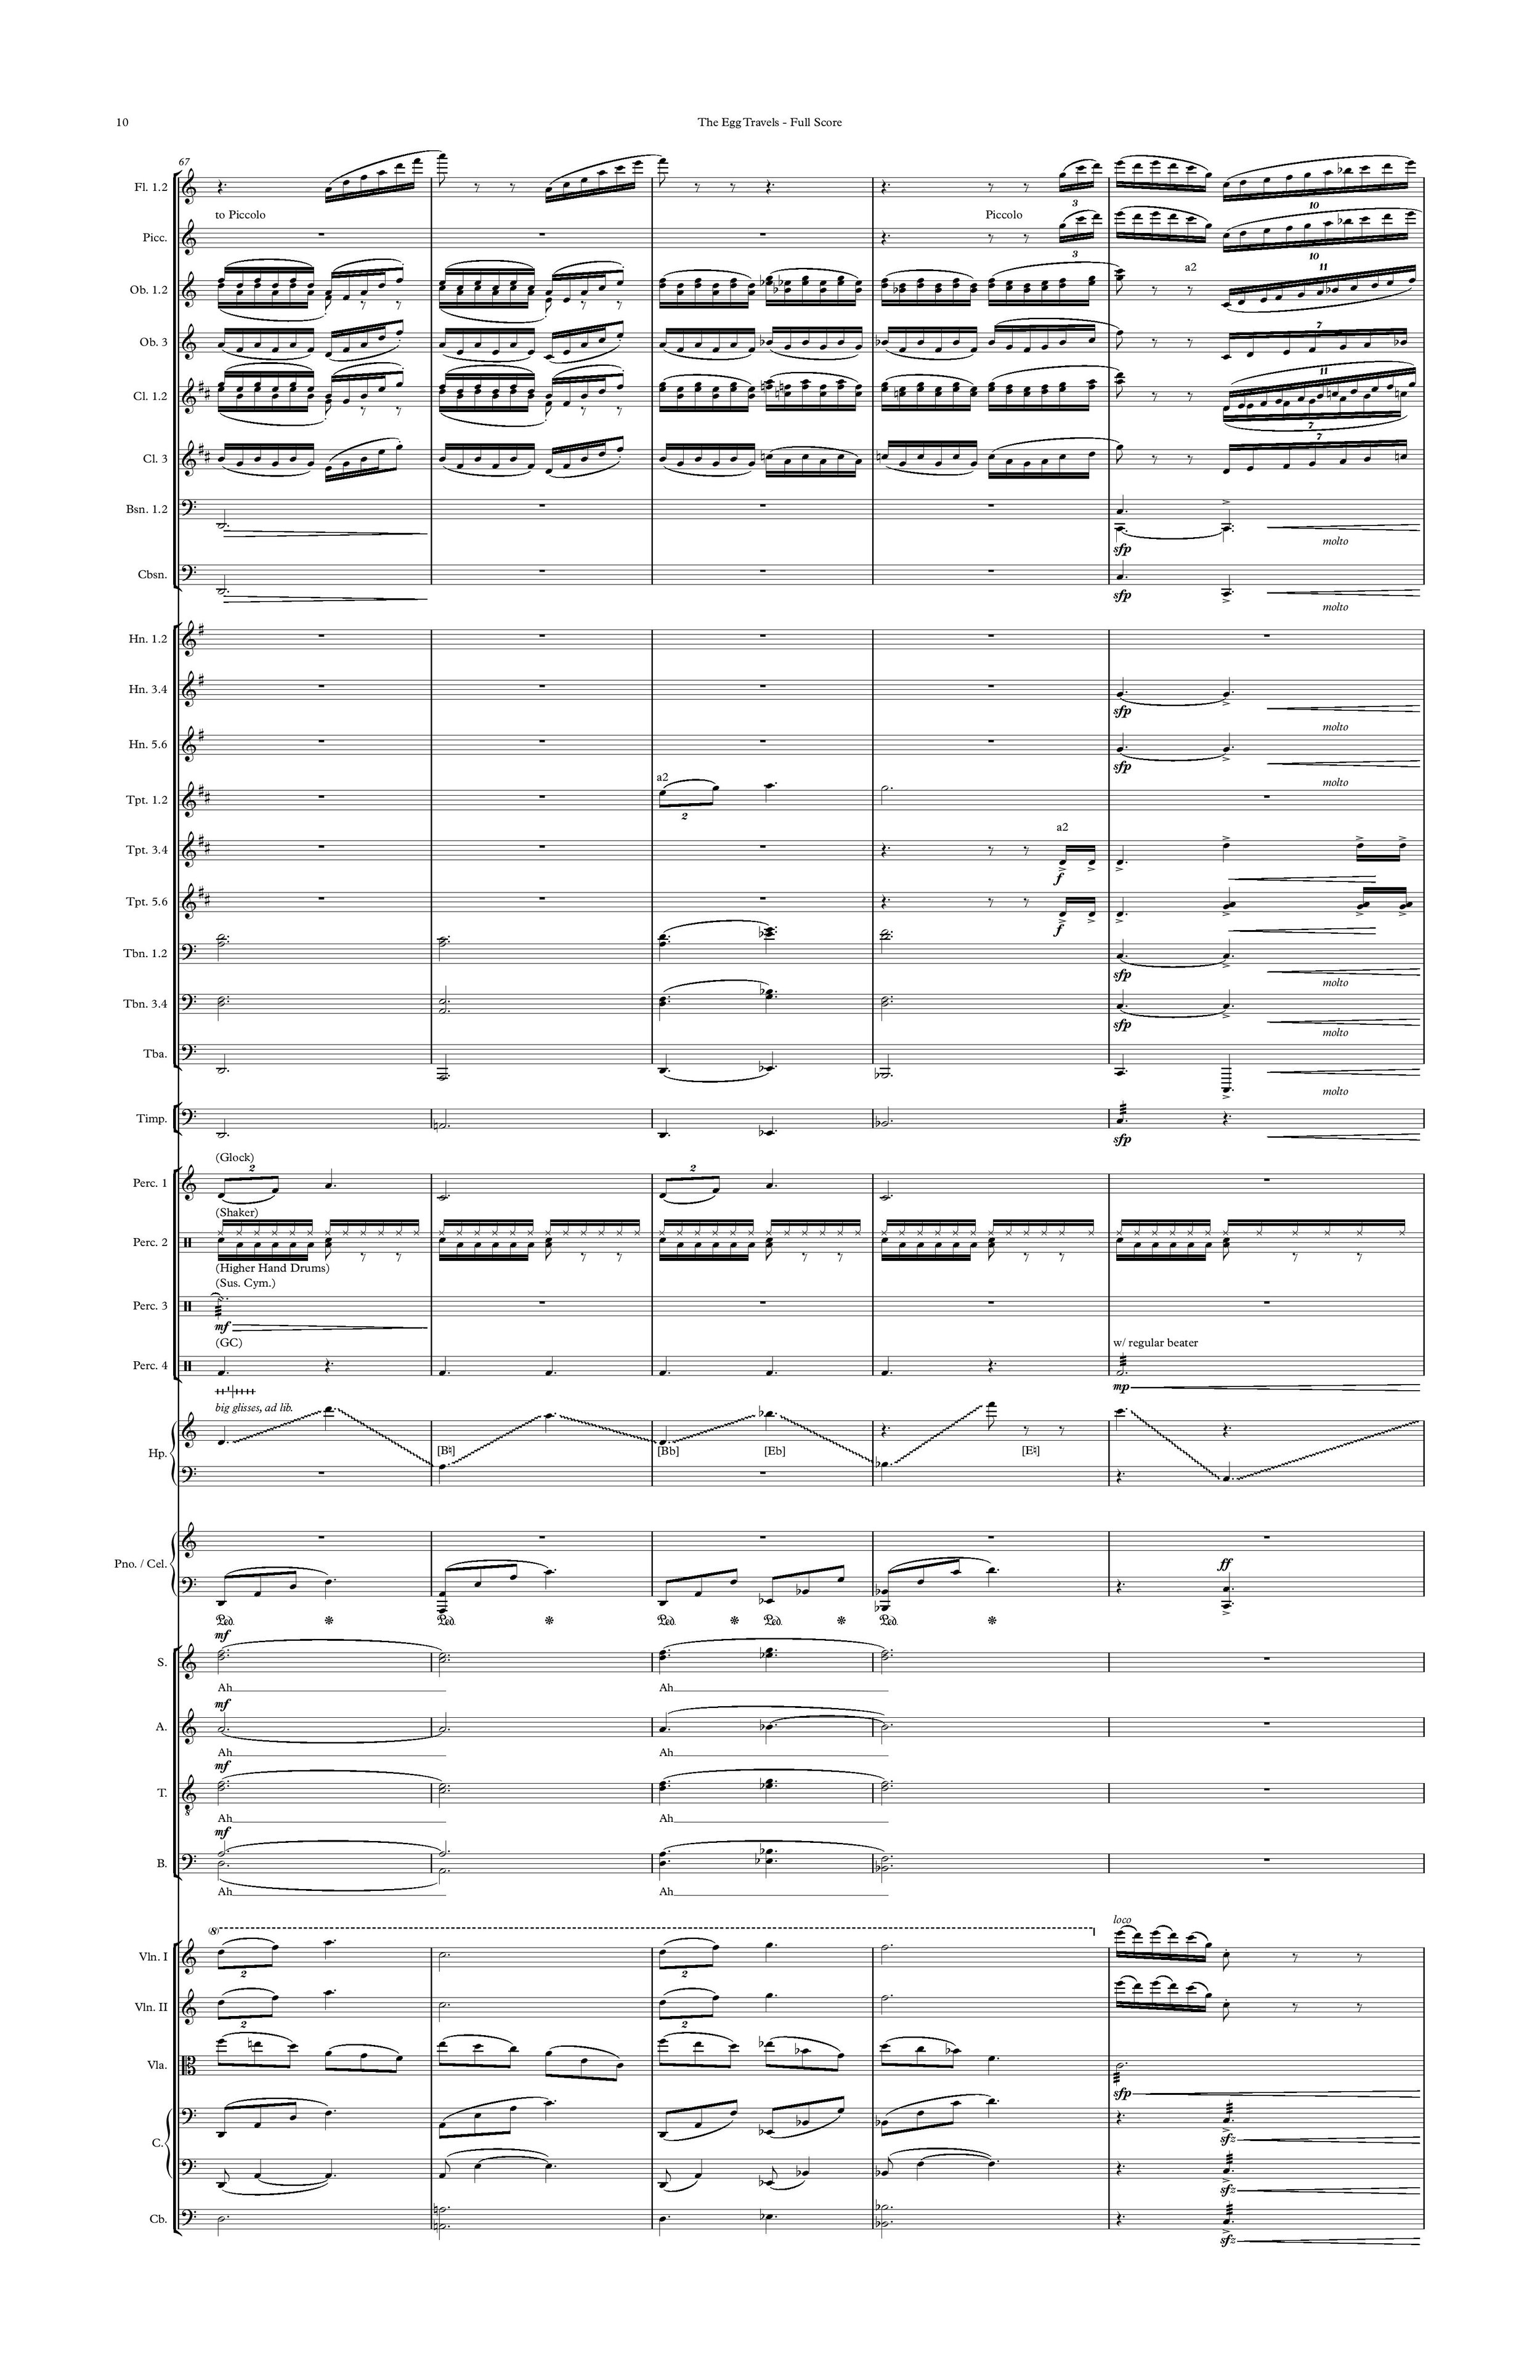 The Egg Travels - Full Score-page-010.jpg